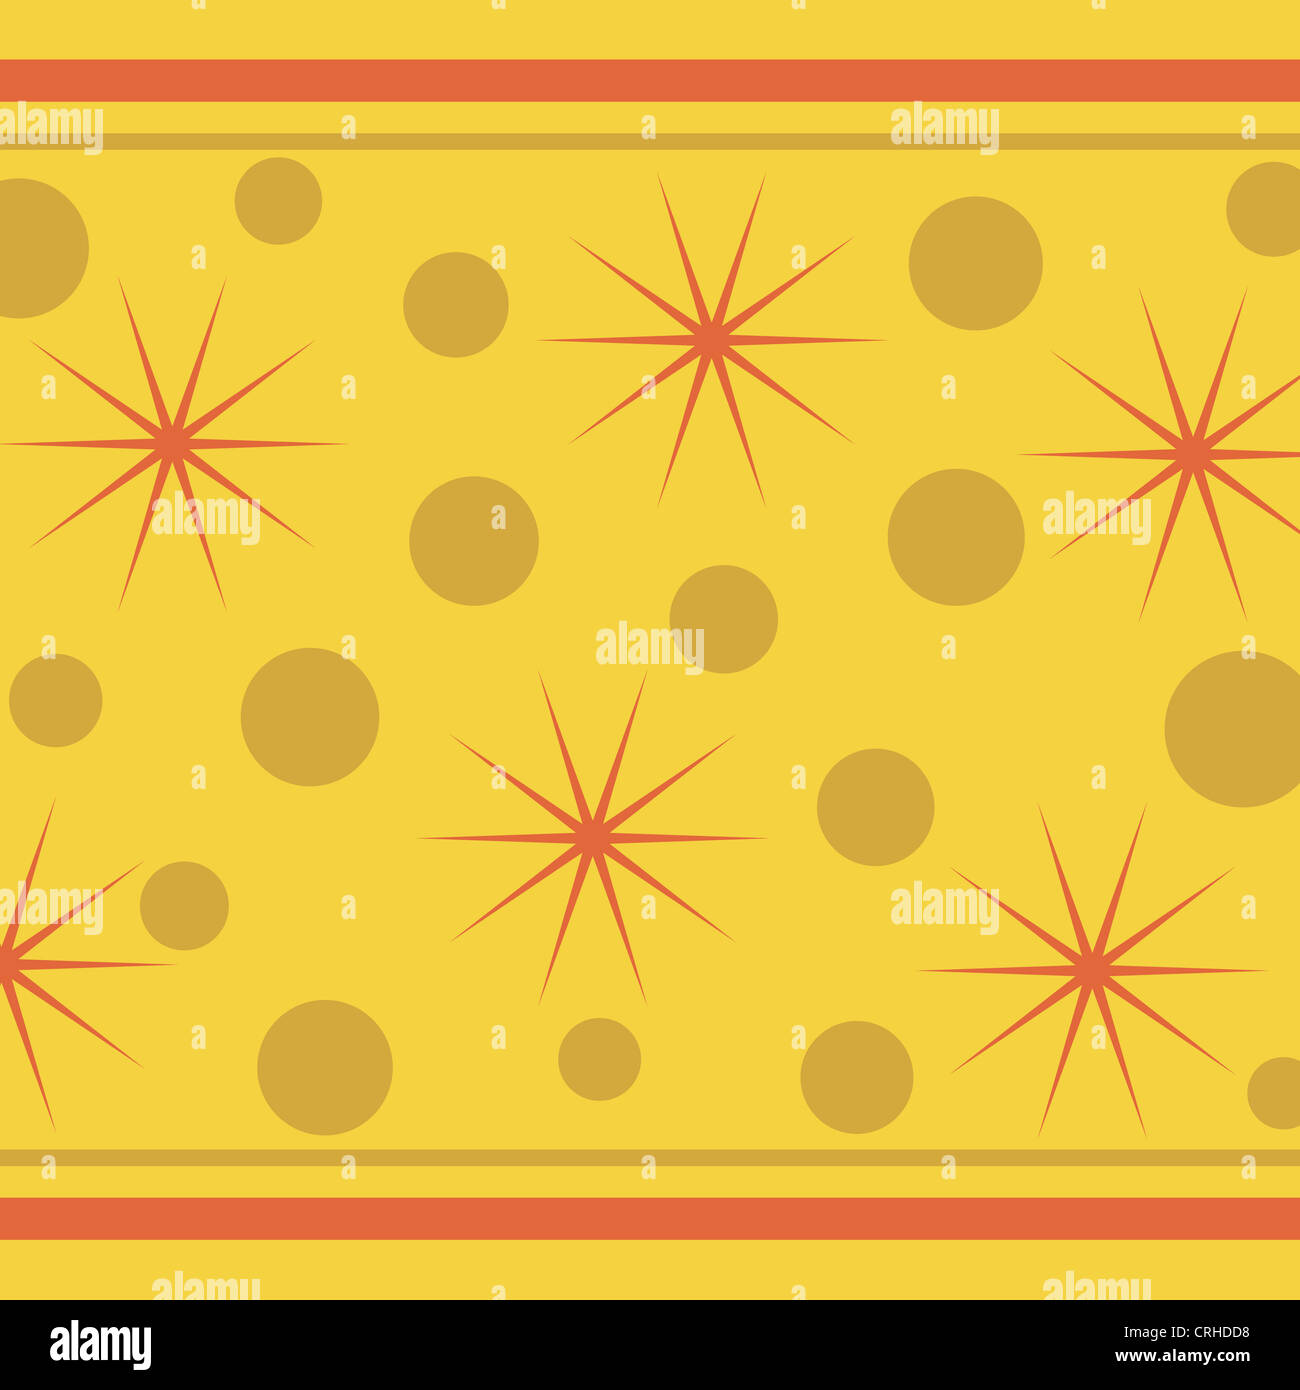 Stars, circles and stripes pattern on yellow Stock Photo